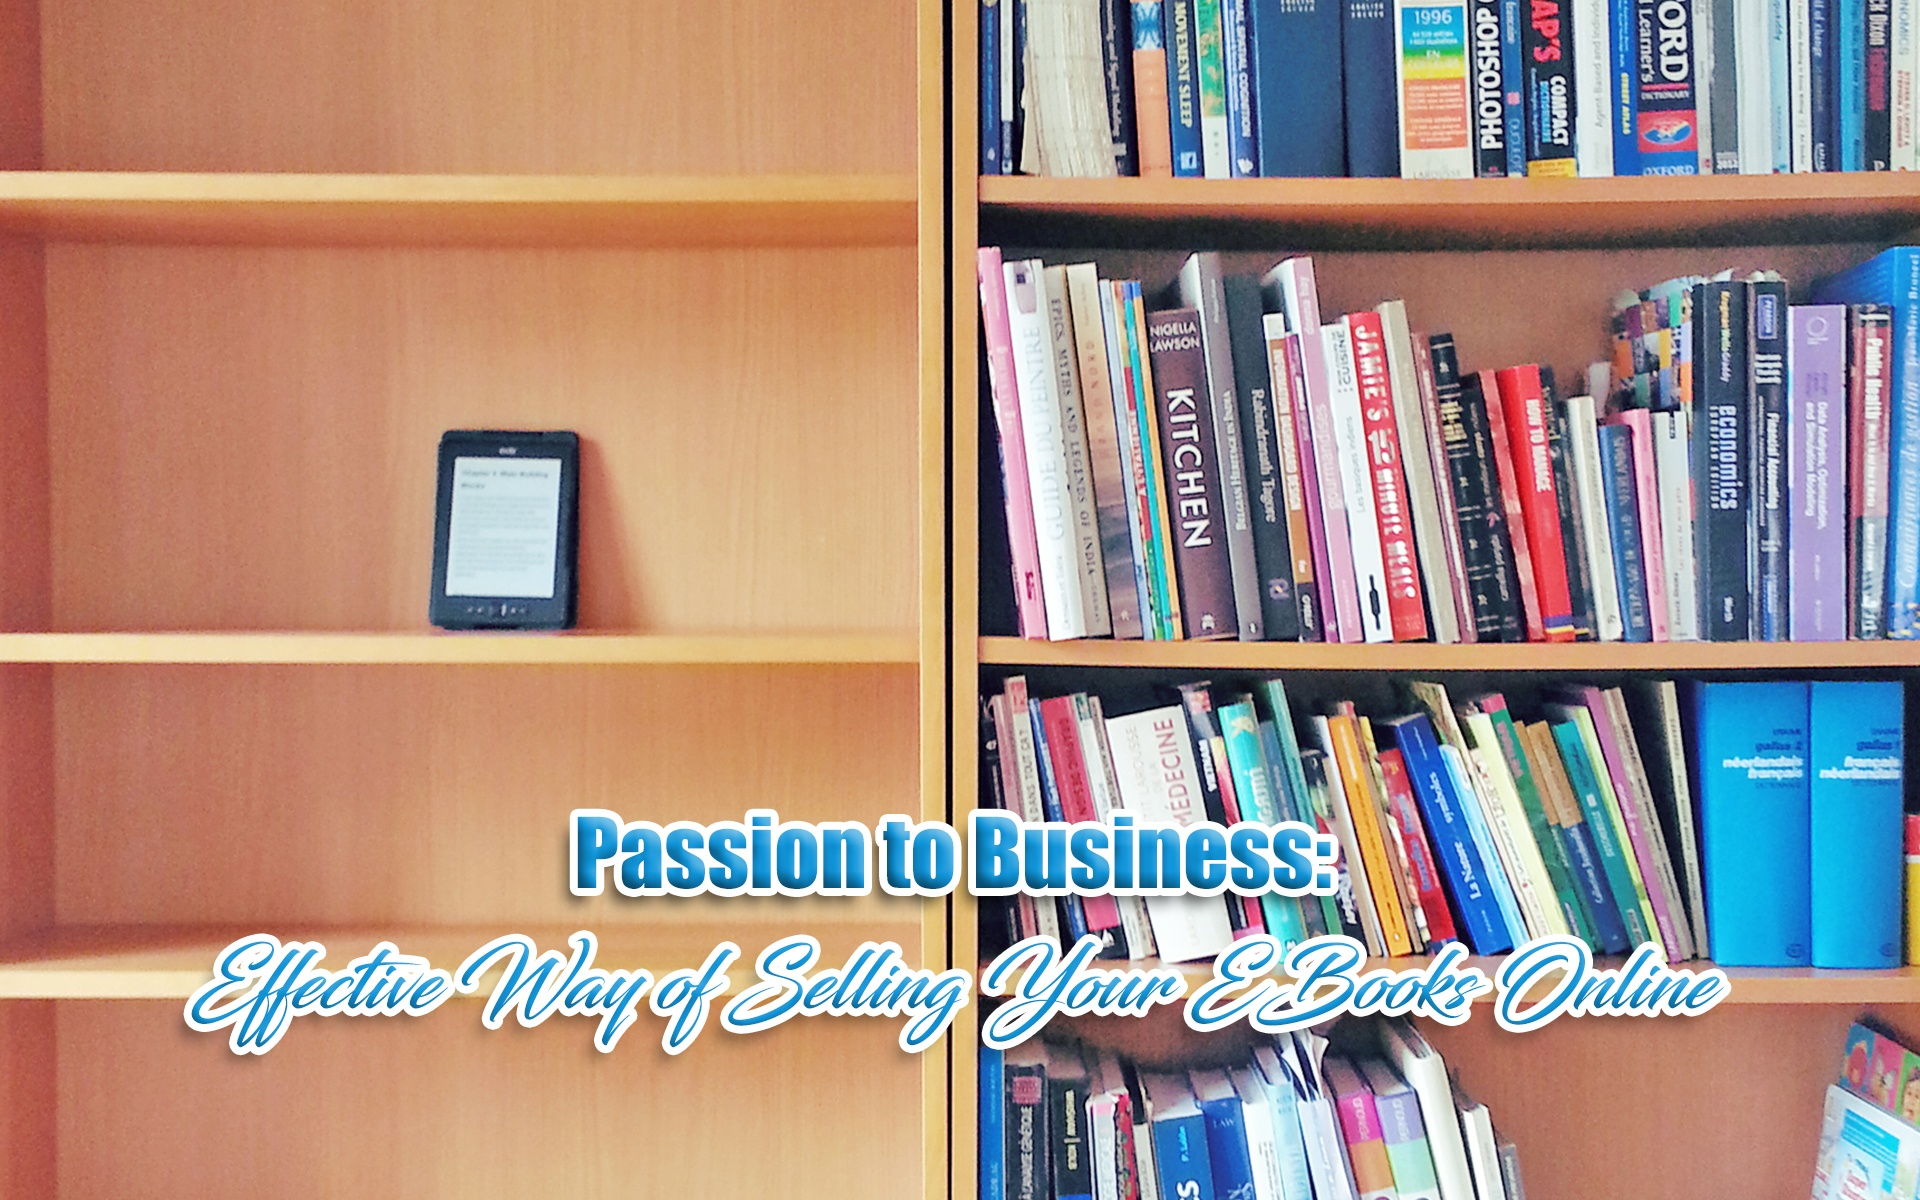 Passion to Business: Effective Way of Selling Your EBooks Online